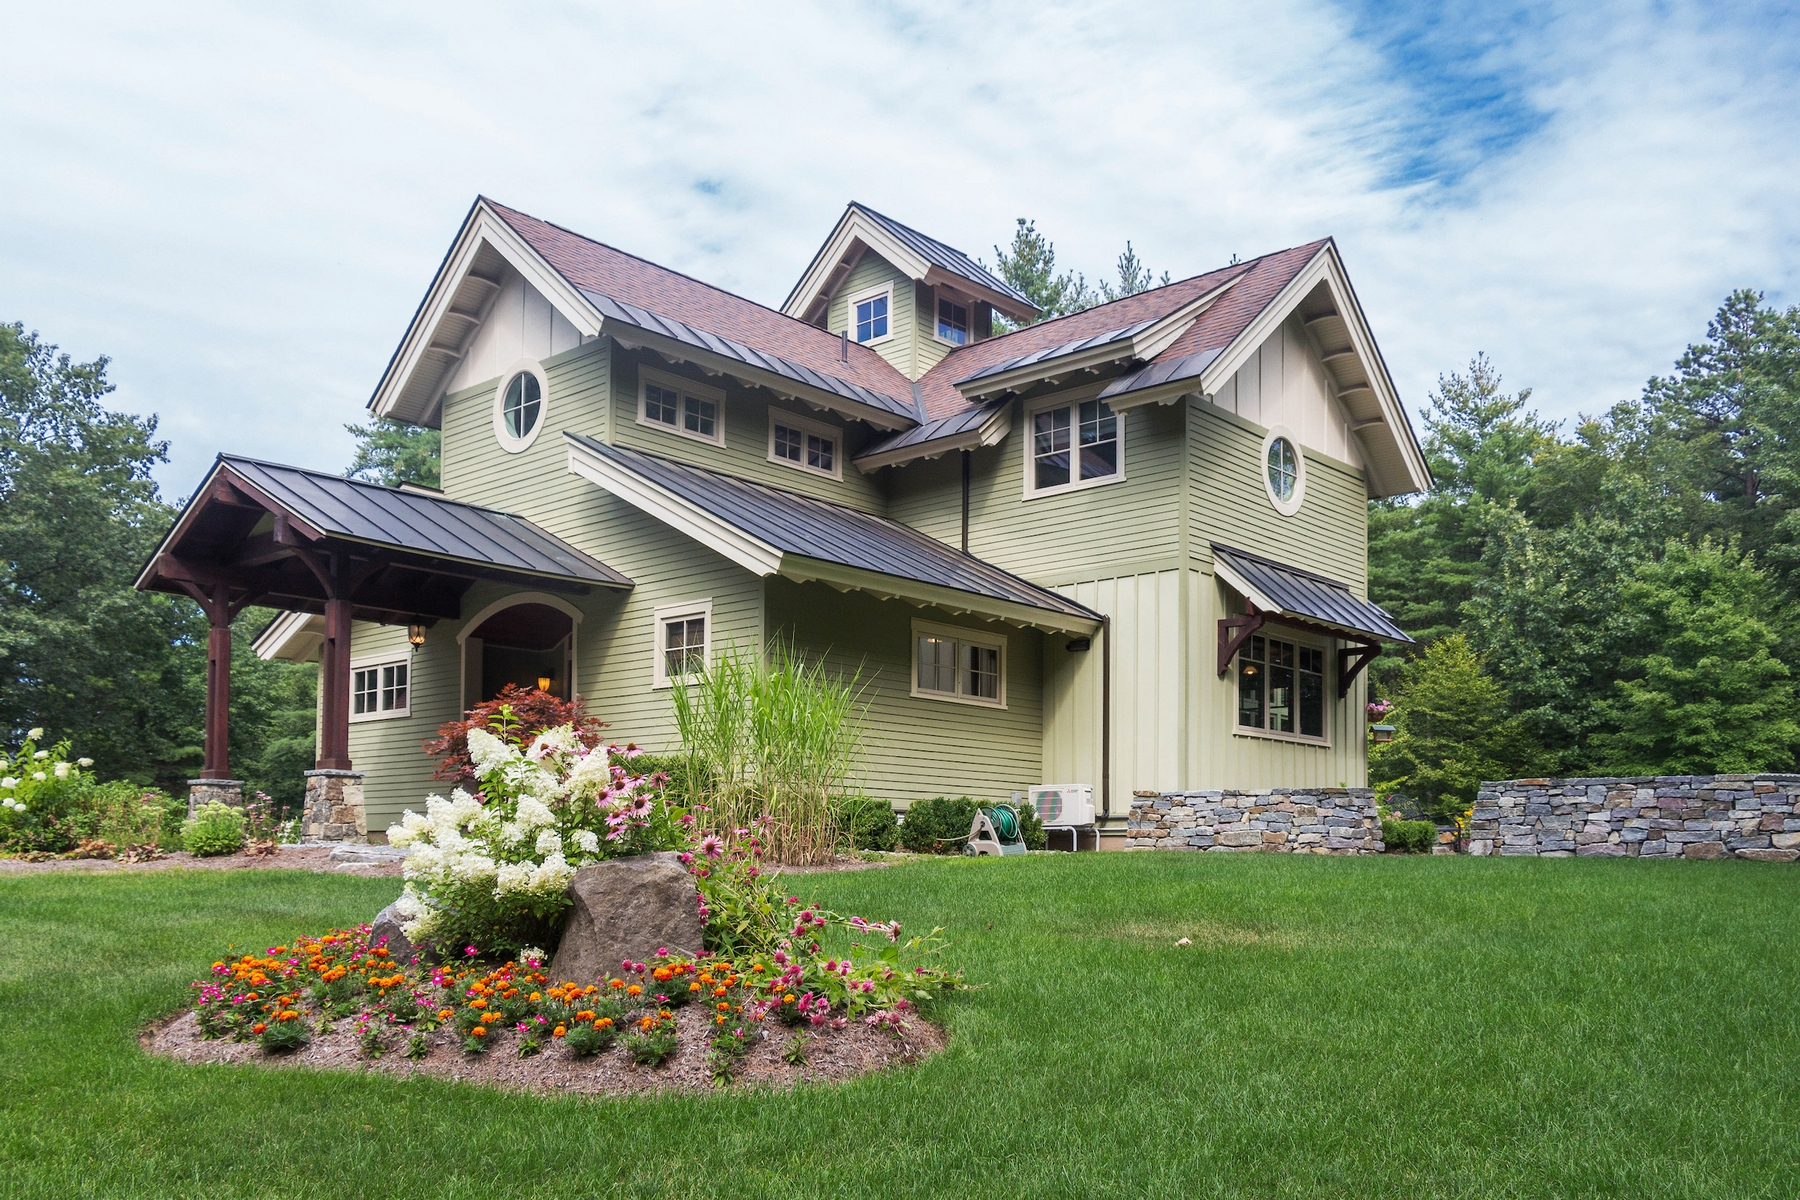 Single Family Home for Sale at Custom Built Home in Saratoga 149 Louden Rd Saratoga Springs, New York 12866 United States